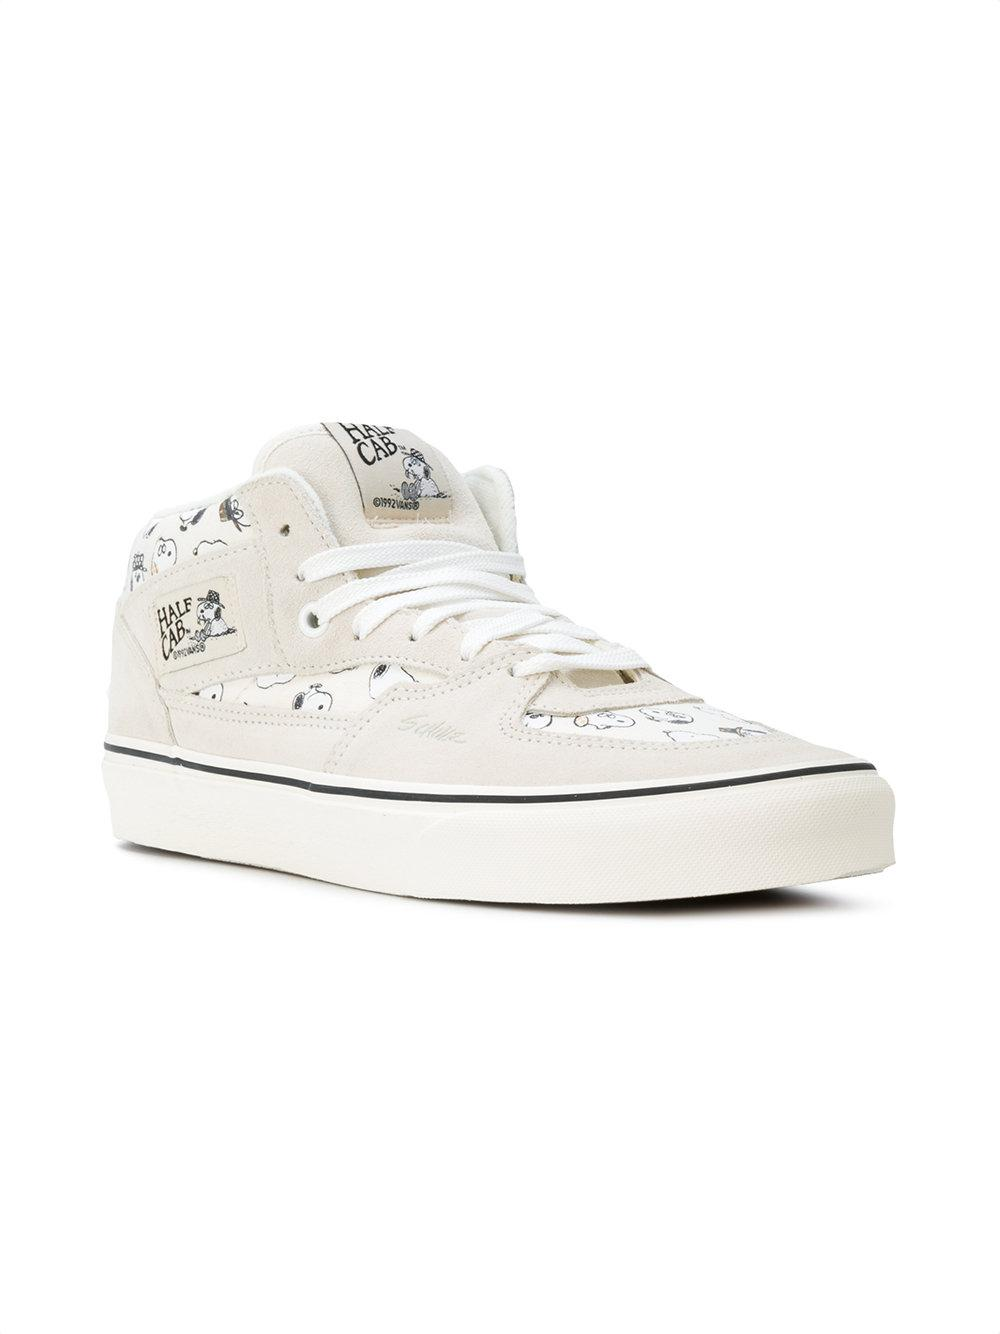 9d352d930e Lyst - Vans Half Cab Snoopy Sneakers in White for Men